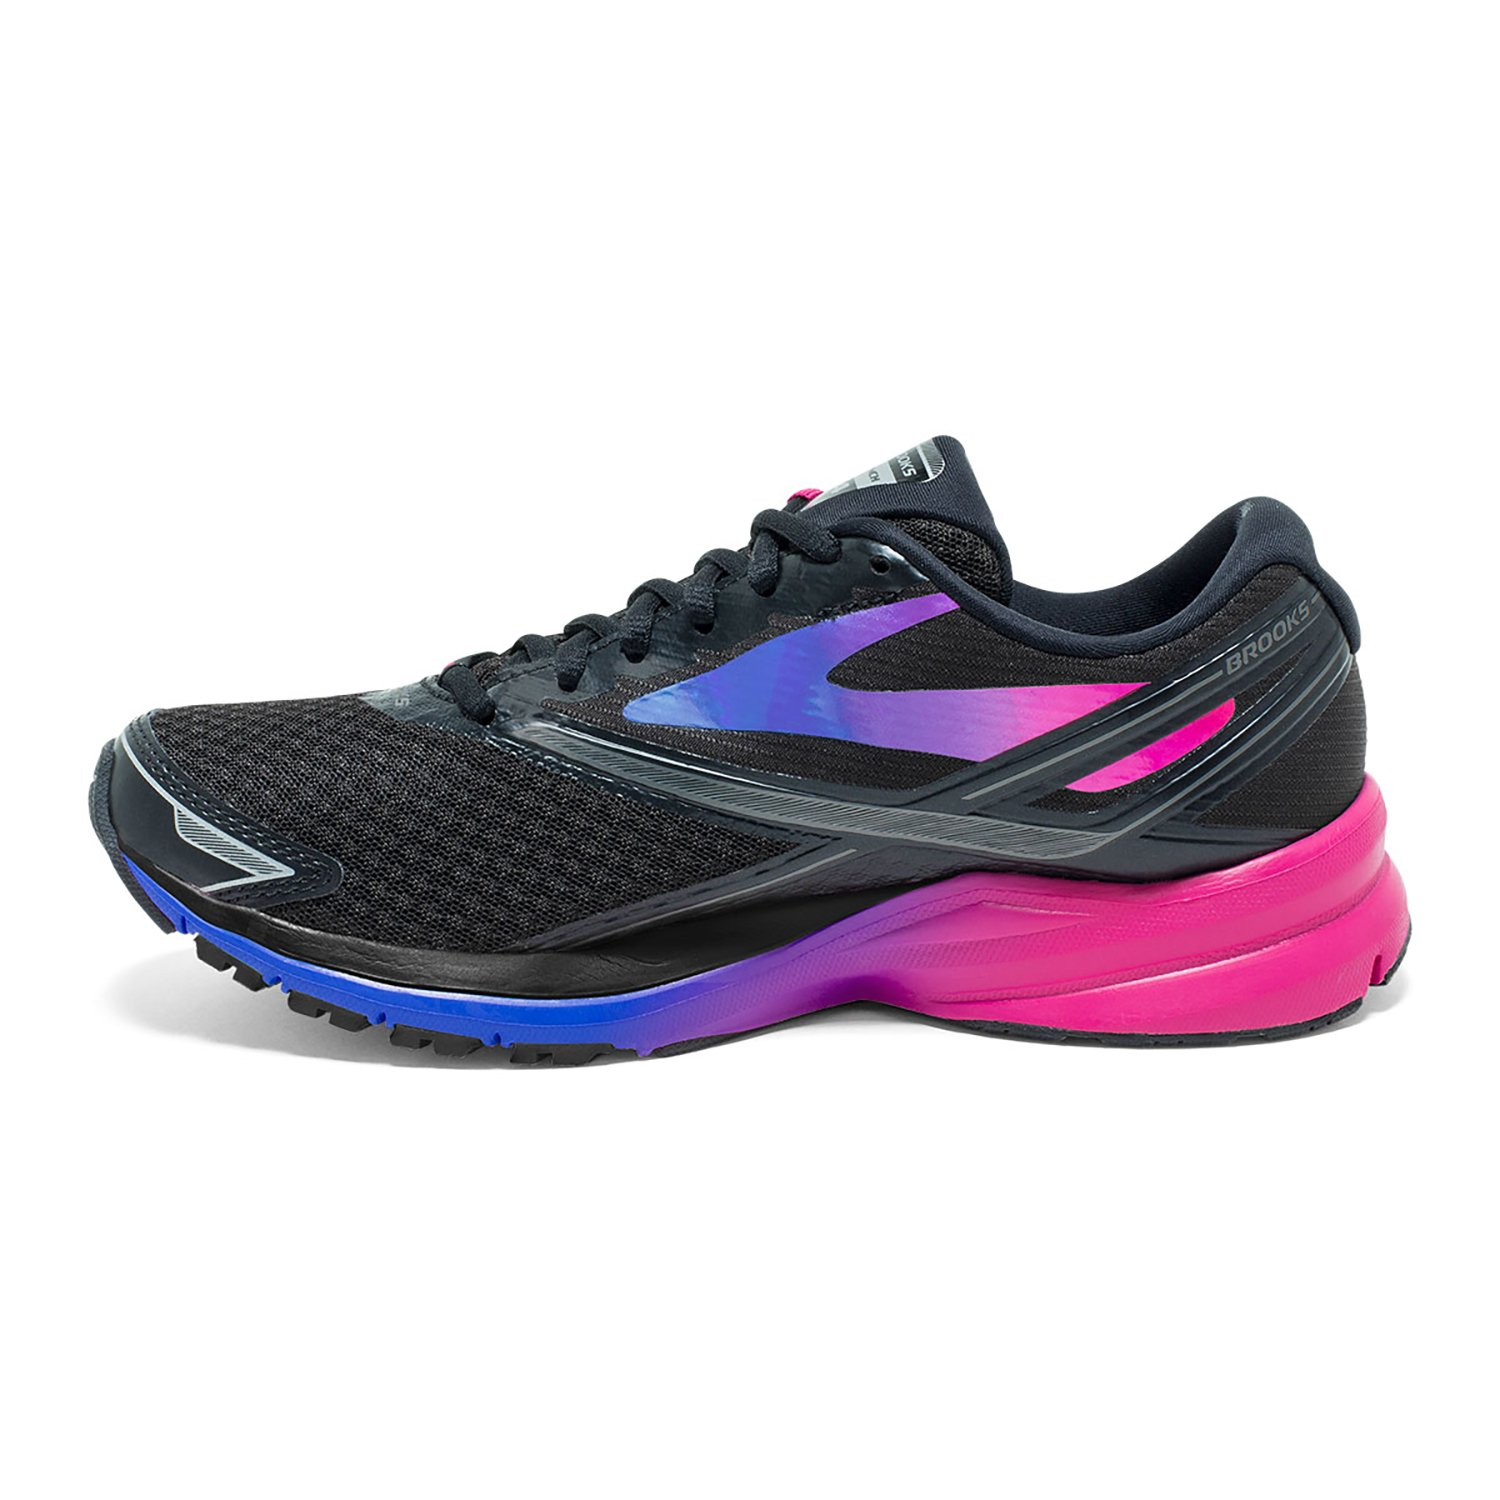 Brooks Womens Launch 4 B01GEZUF5Y 6 B(M) US|Black/Fuchsia Purple/Dazzling Blue